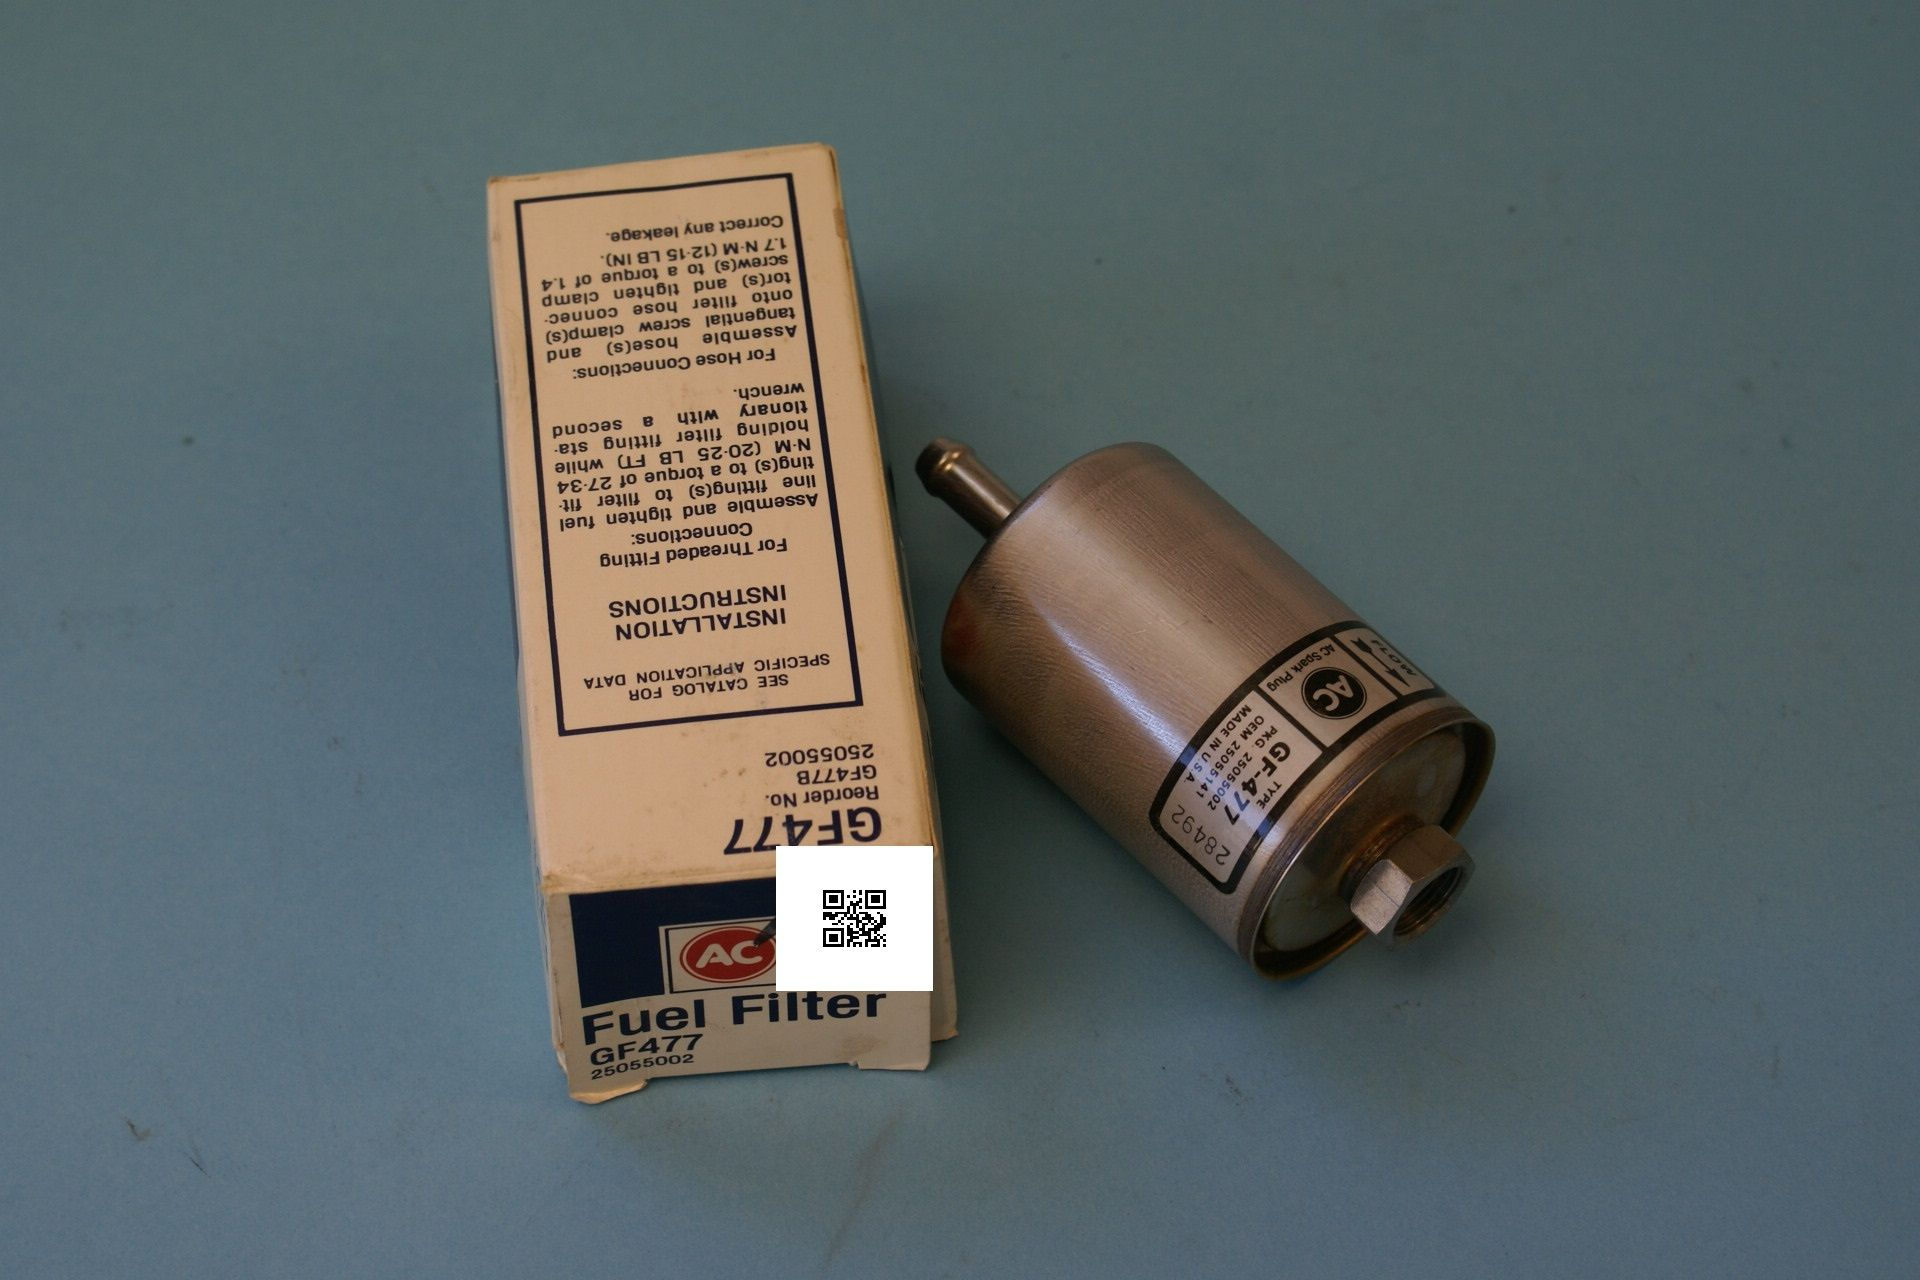 1982 Chevy Camaro Citation Fuel Filter New In Box Ac Filters